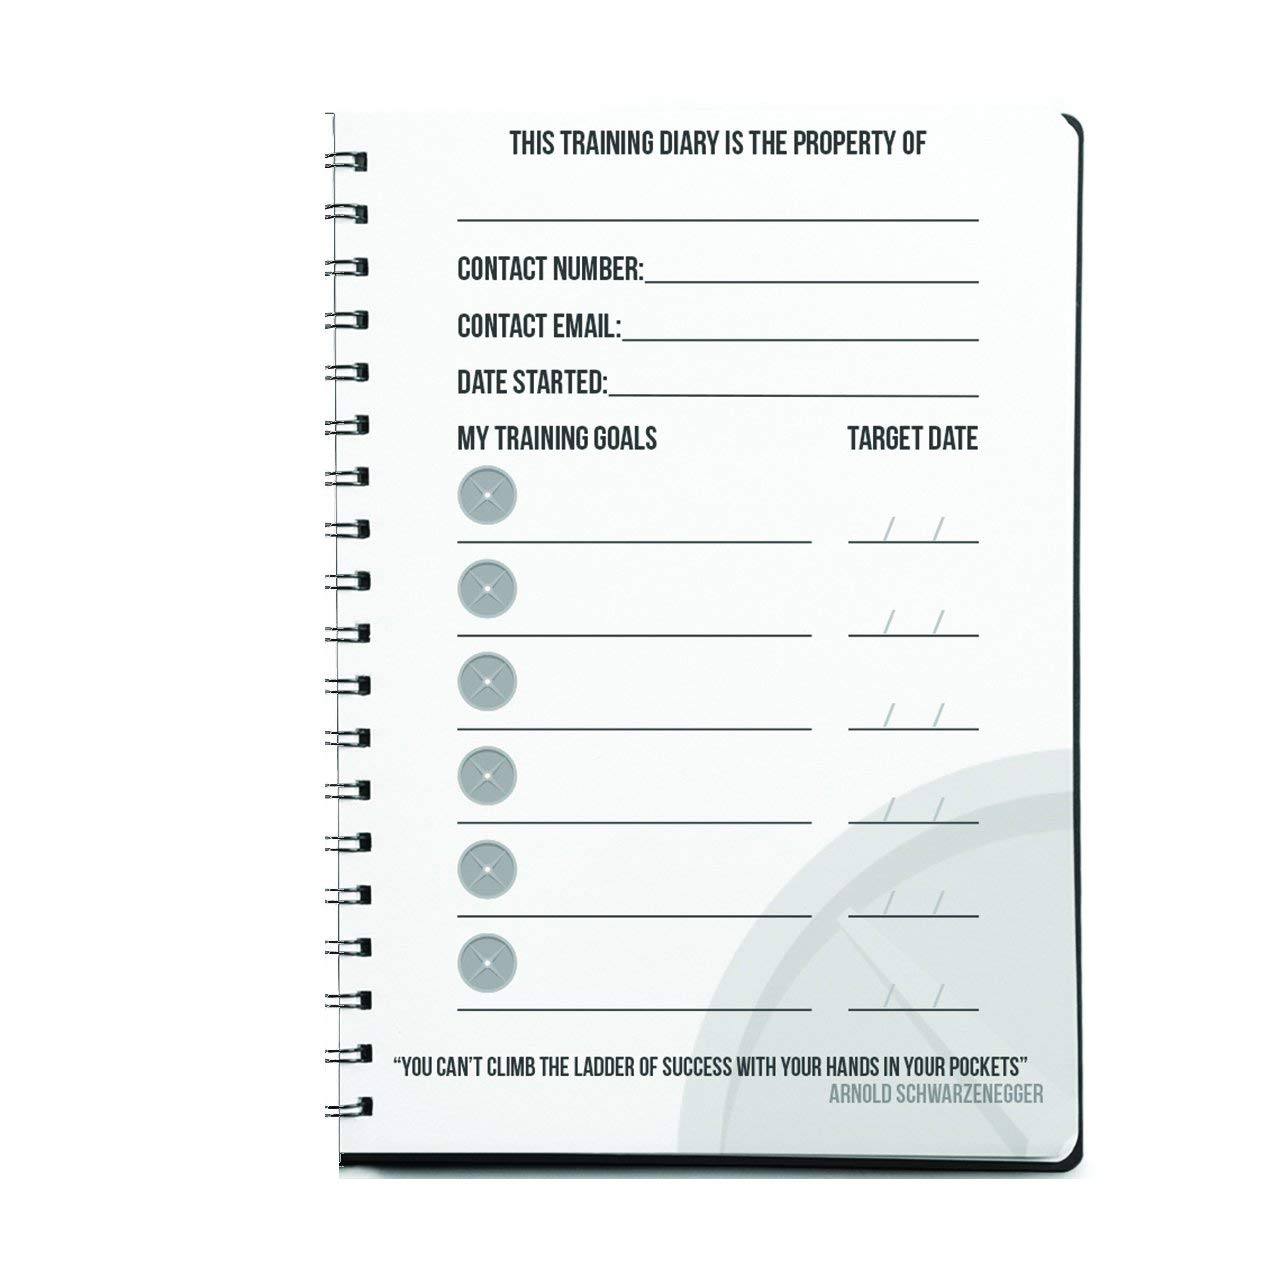 Workout Log Gym (Grey - Wire-Bound) – XL A5 Sized Training and Gym Diary -  Set Your Fitness Goals, Track 100 Workouts and Record Your Progress in